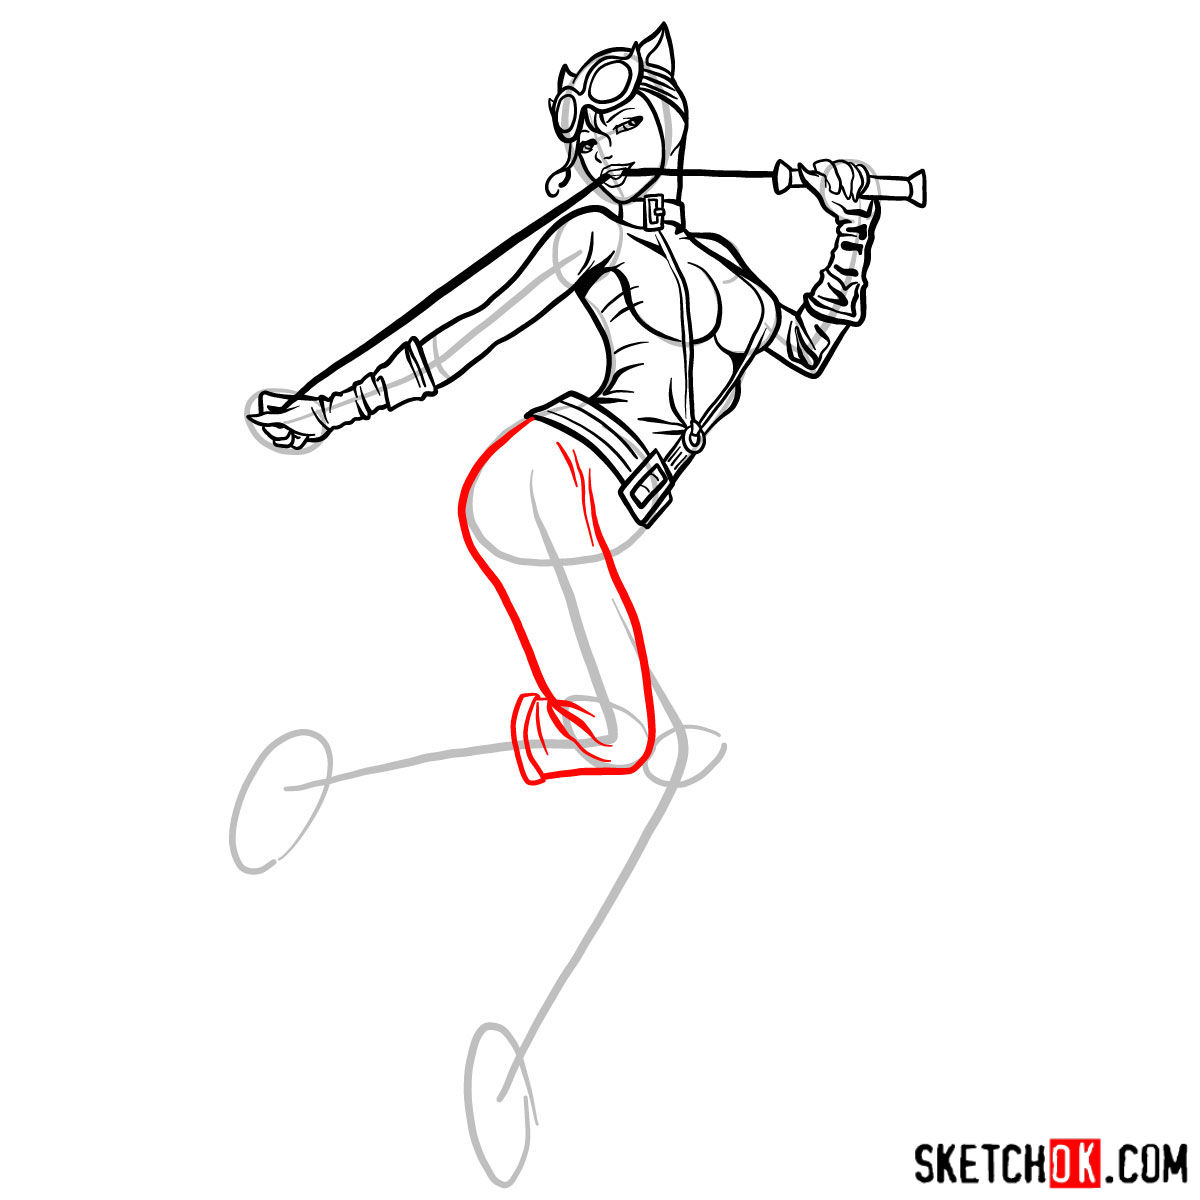 How to draw Catwoman superheroine from DC Comics - step 13